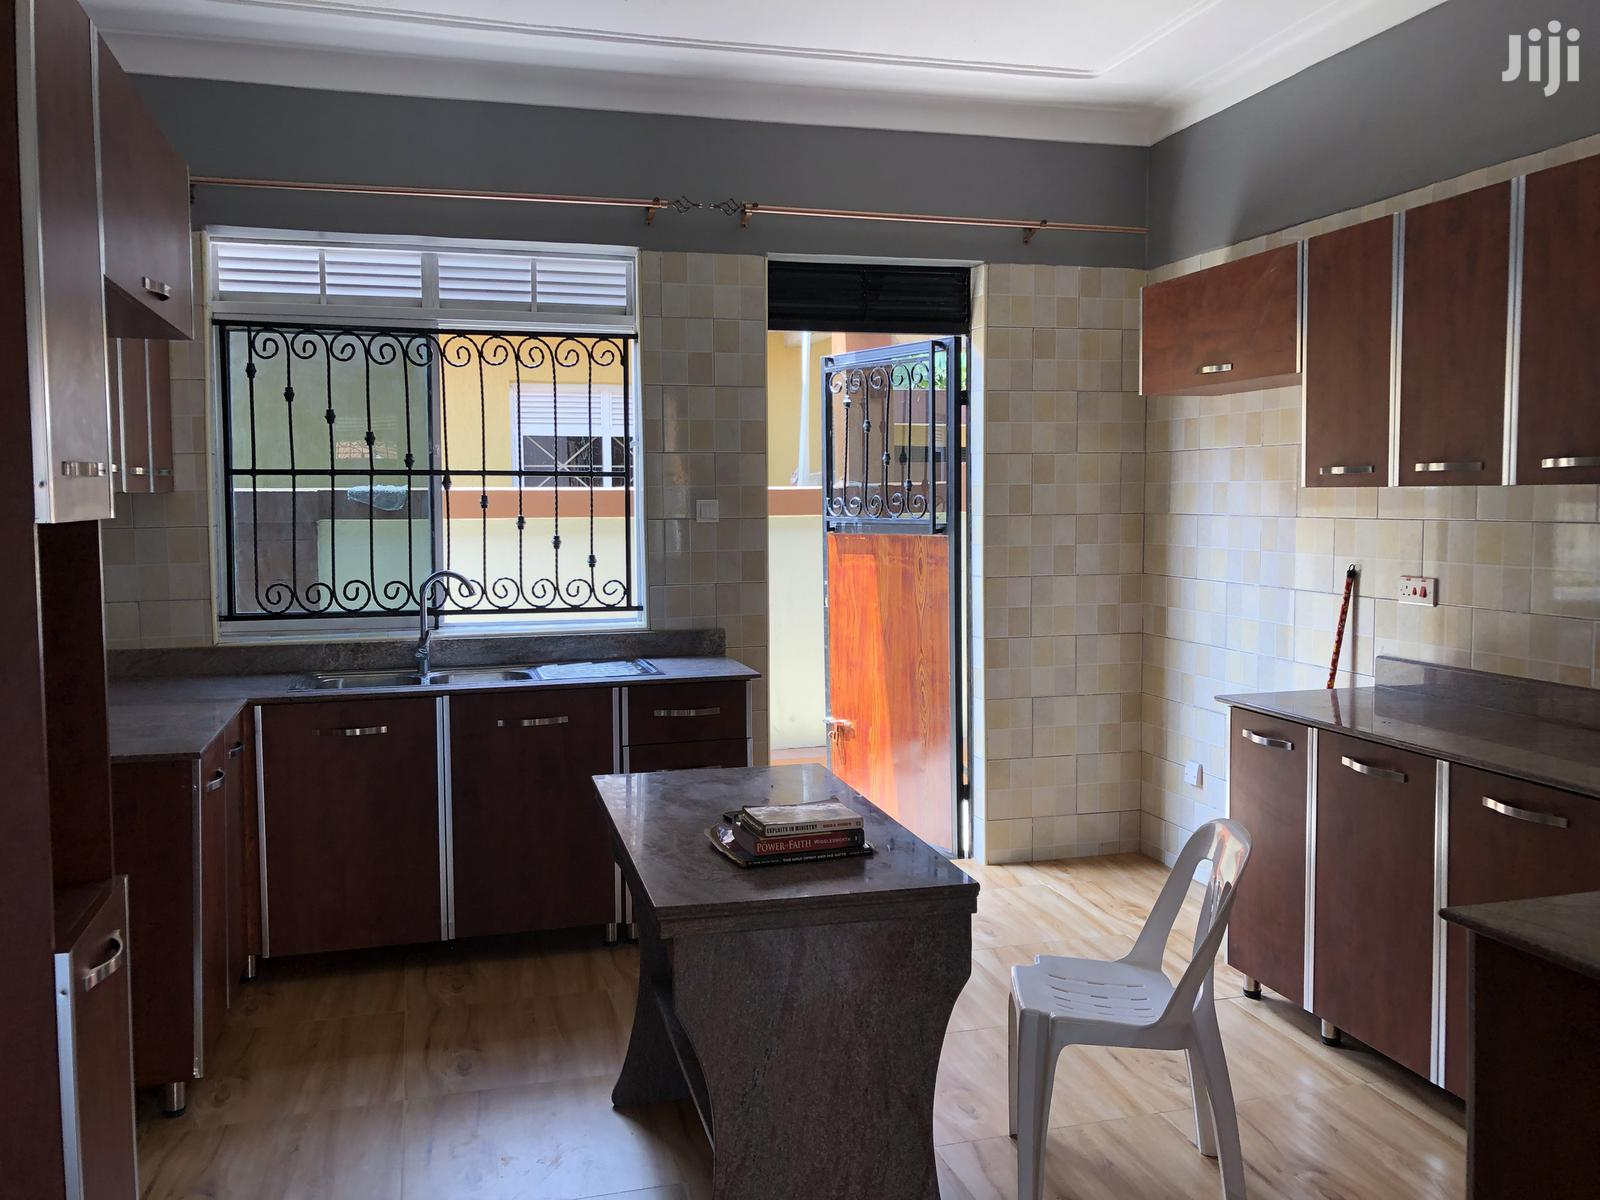 Kira Posh Bungalow In Tarmacked Neighborhood On Quick Sell | Houses & Apartments For Sale for sale in Kampala, Central Region, Uganda